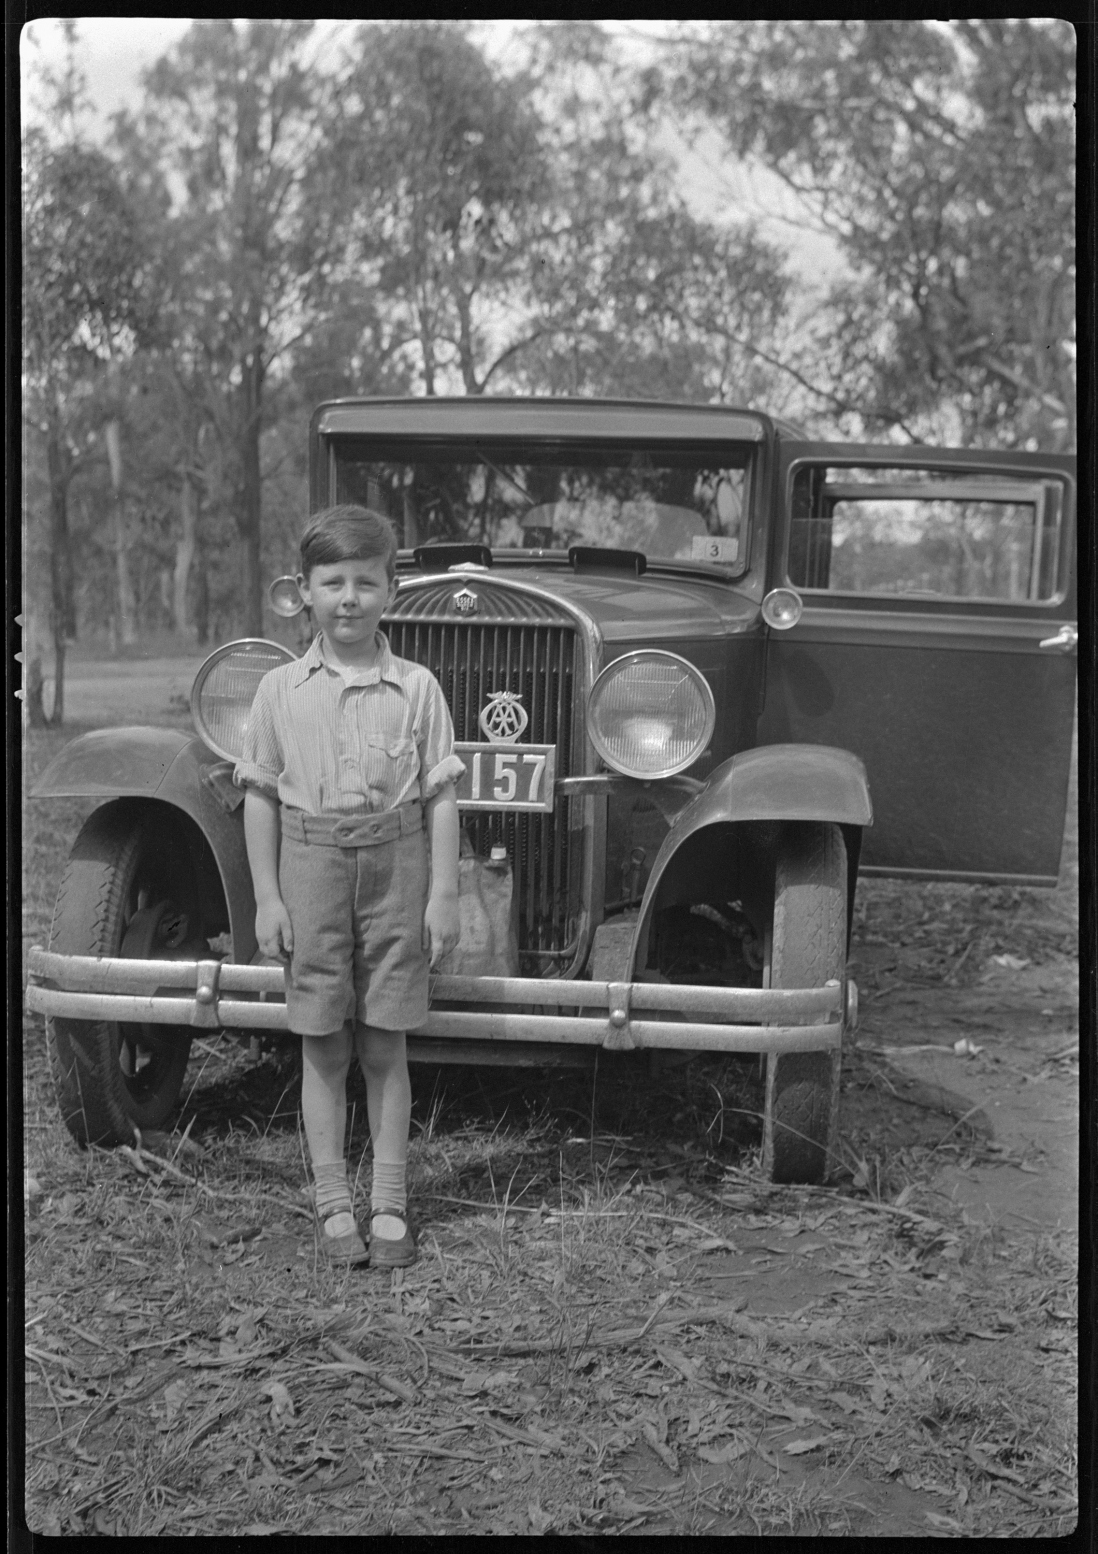 Black and white photo of boy standing in front of vintage car in bush setting.